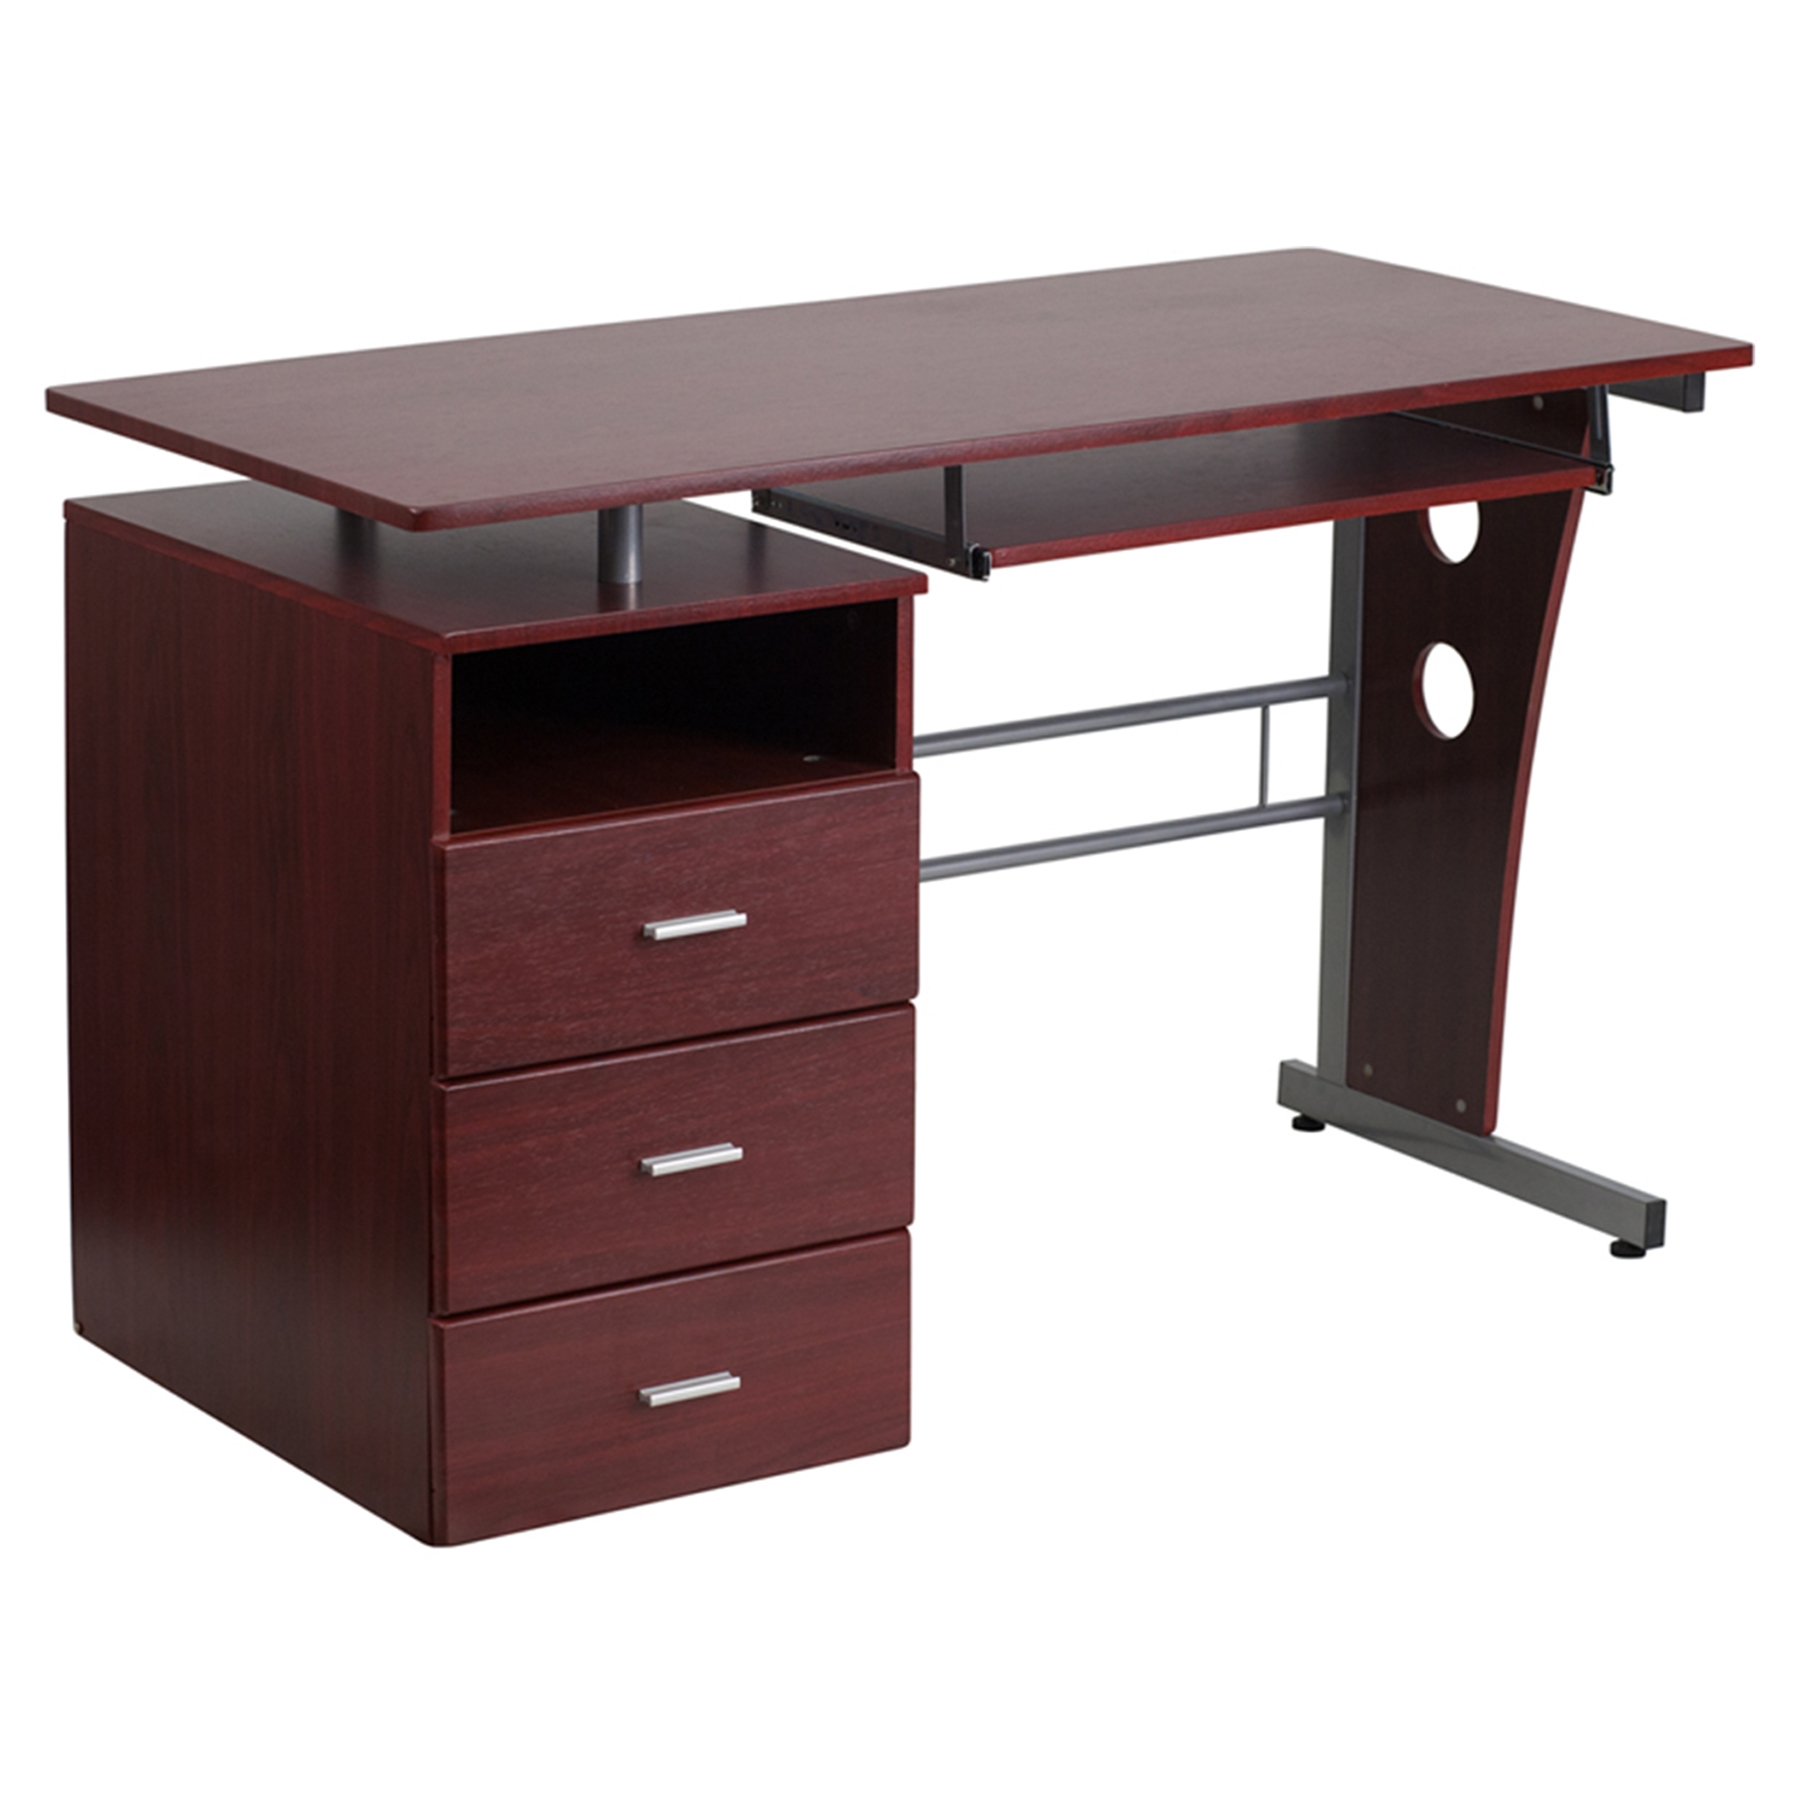 - Computer Desk - 3 Drawers, Pull-Out Keyboard Tray, Mahogany DCG